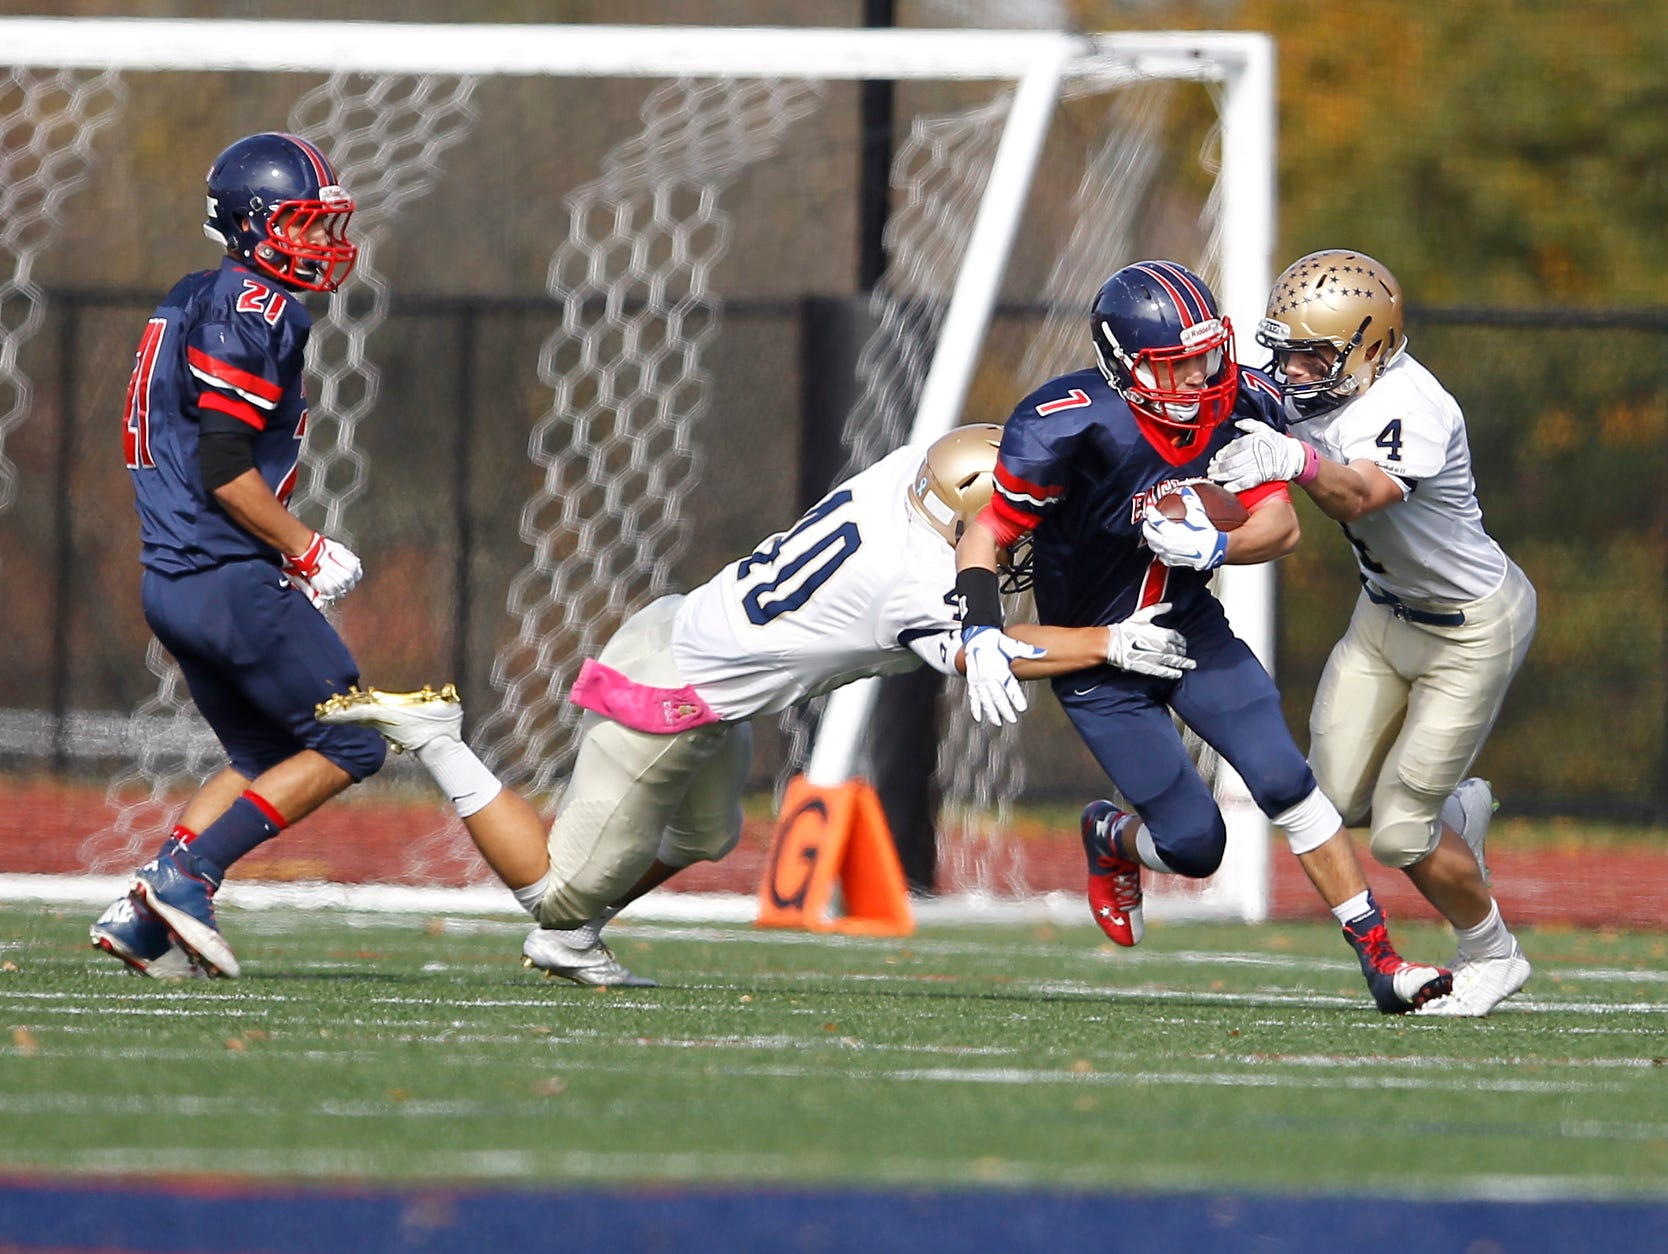 Eastchester falls to Our Lady of Lourdes High School in the class A semi-final football game in Eastchester on Saturday, Oct. 31, 2015.